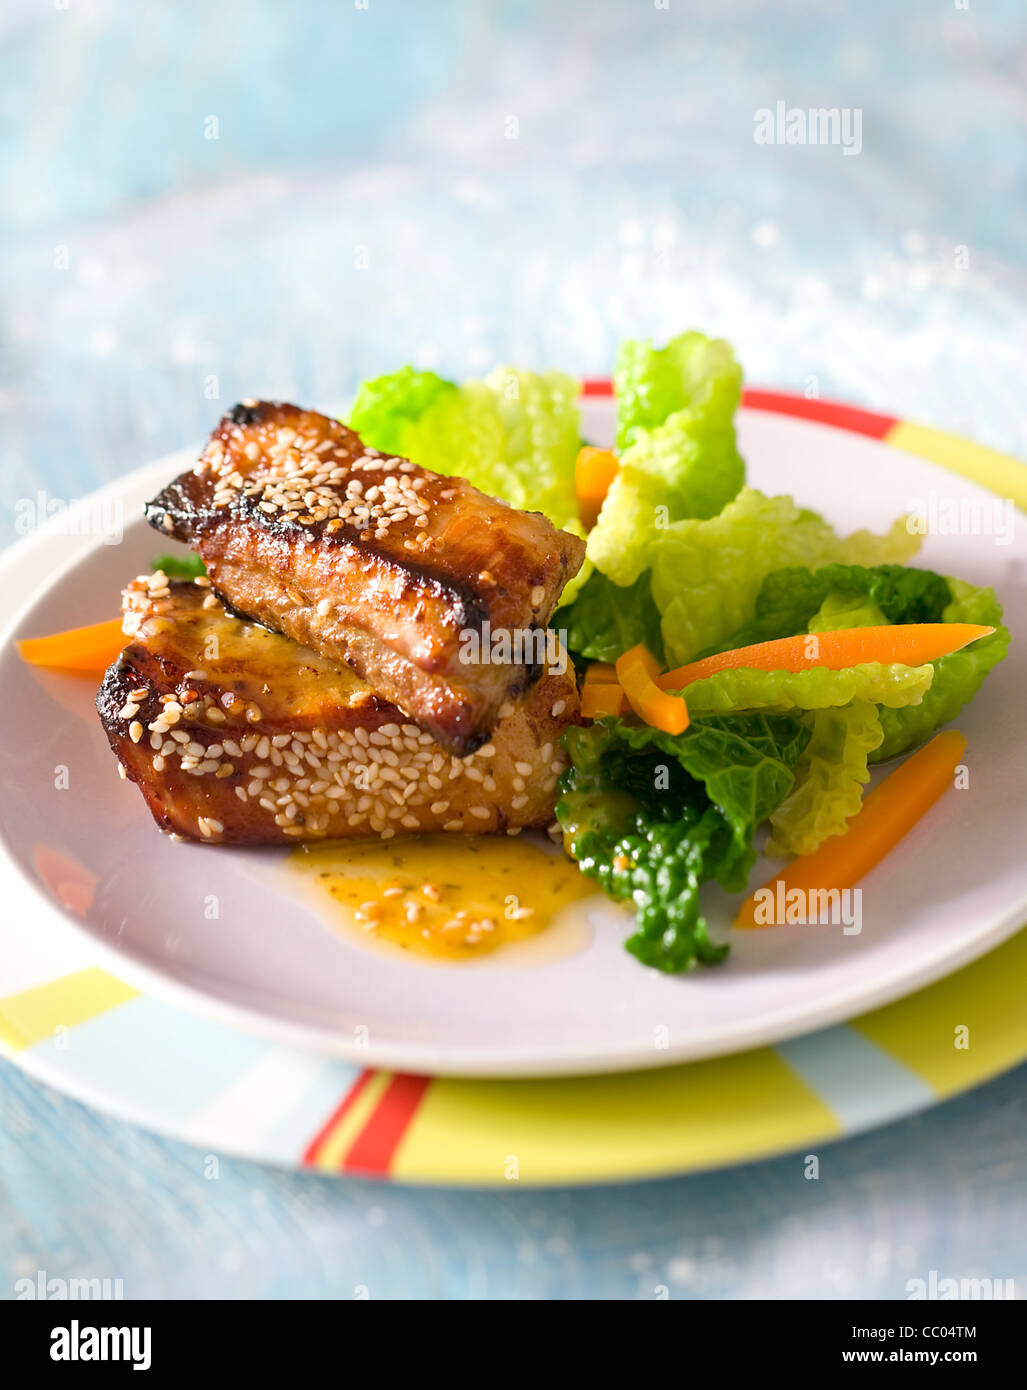 Roasted Spare Ribs and Cabbage - Stock Image